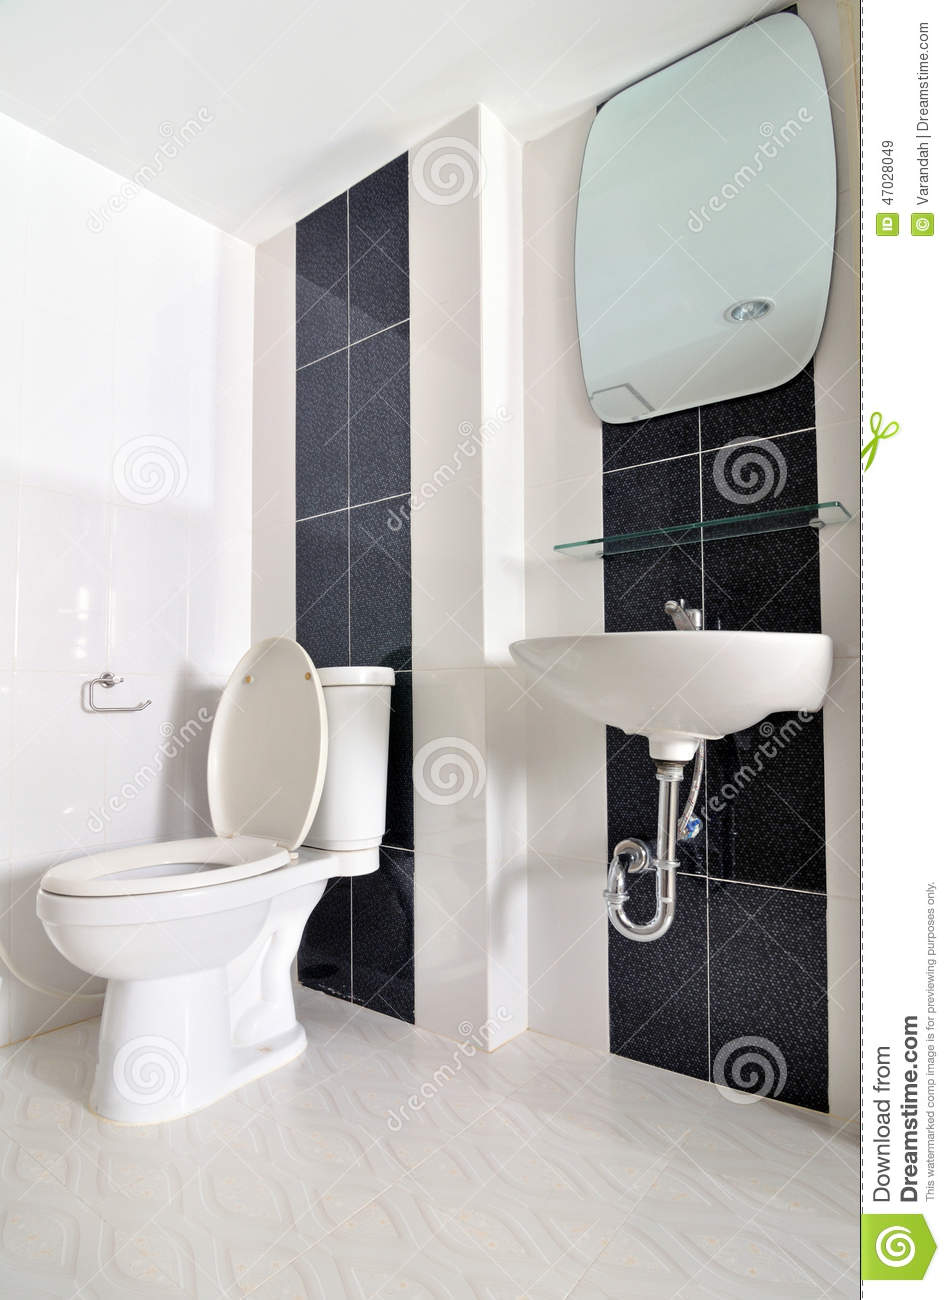 Small simple bathroom with sink and toilet stock photo for Simple small bathroom